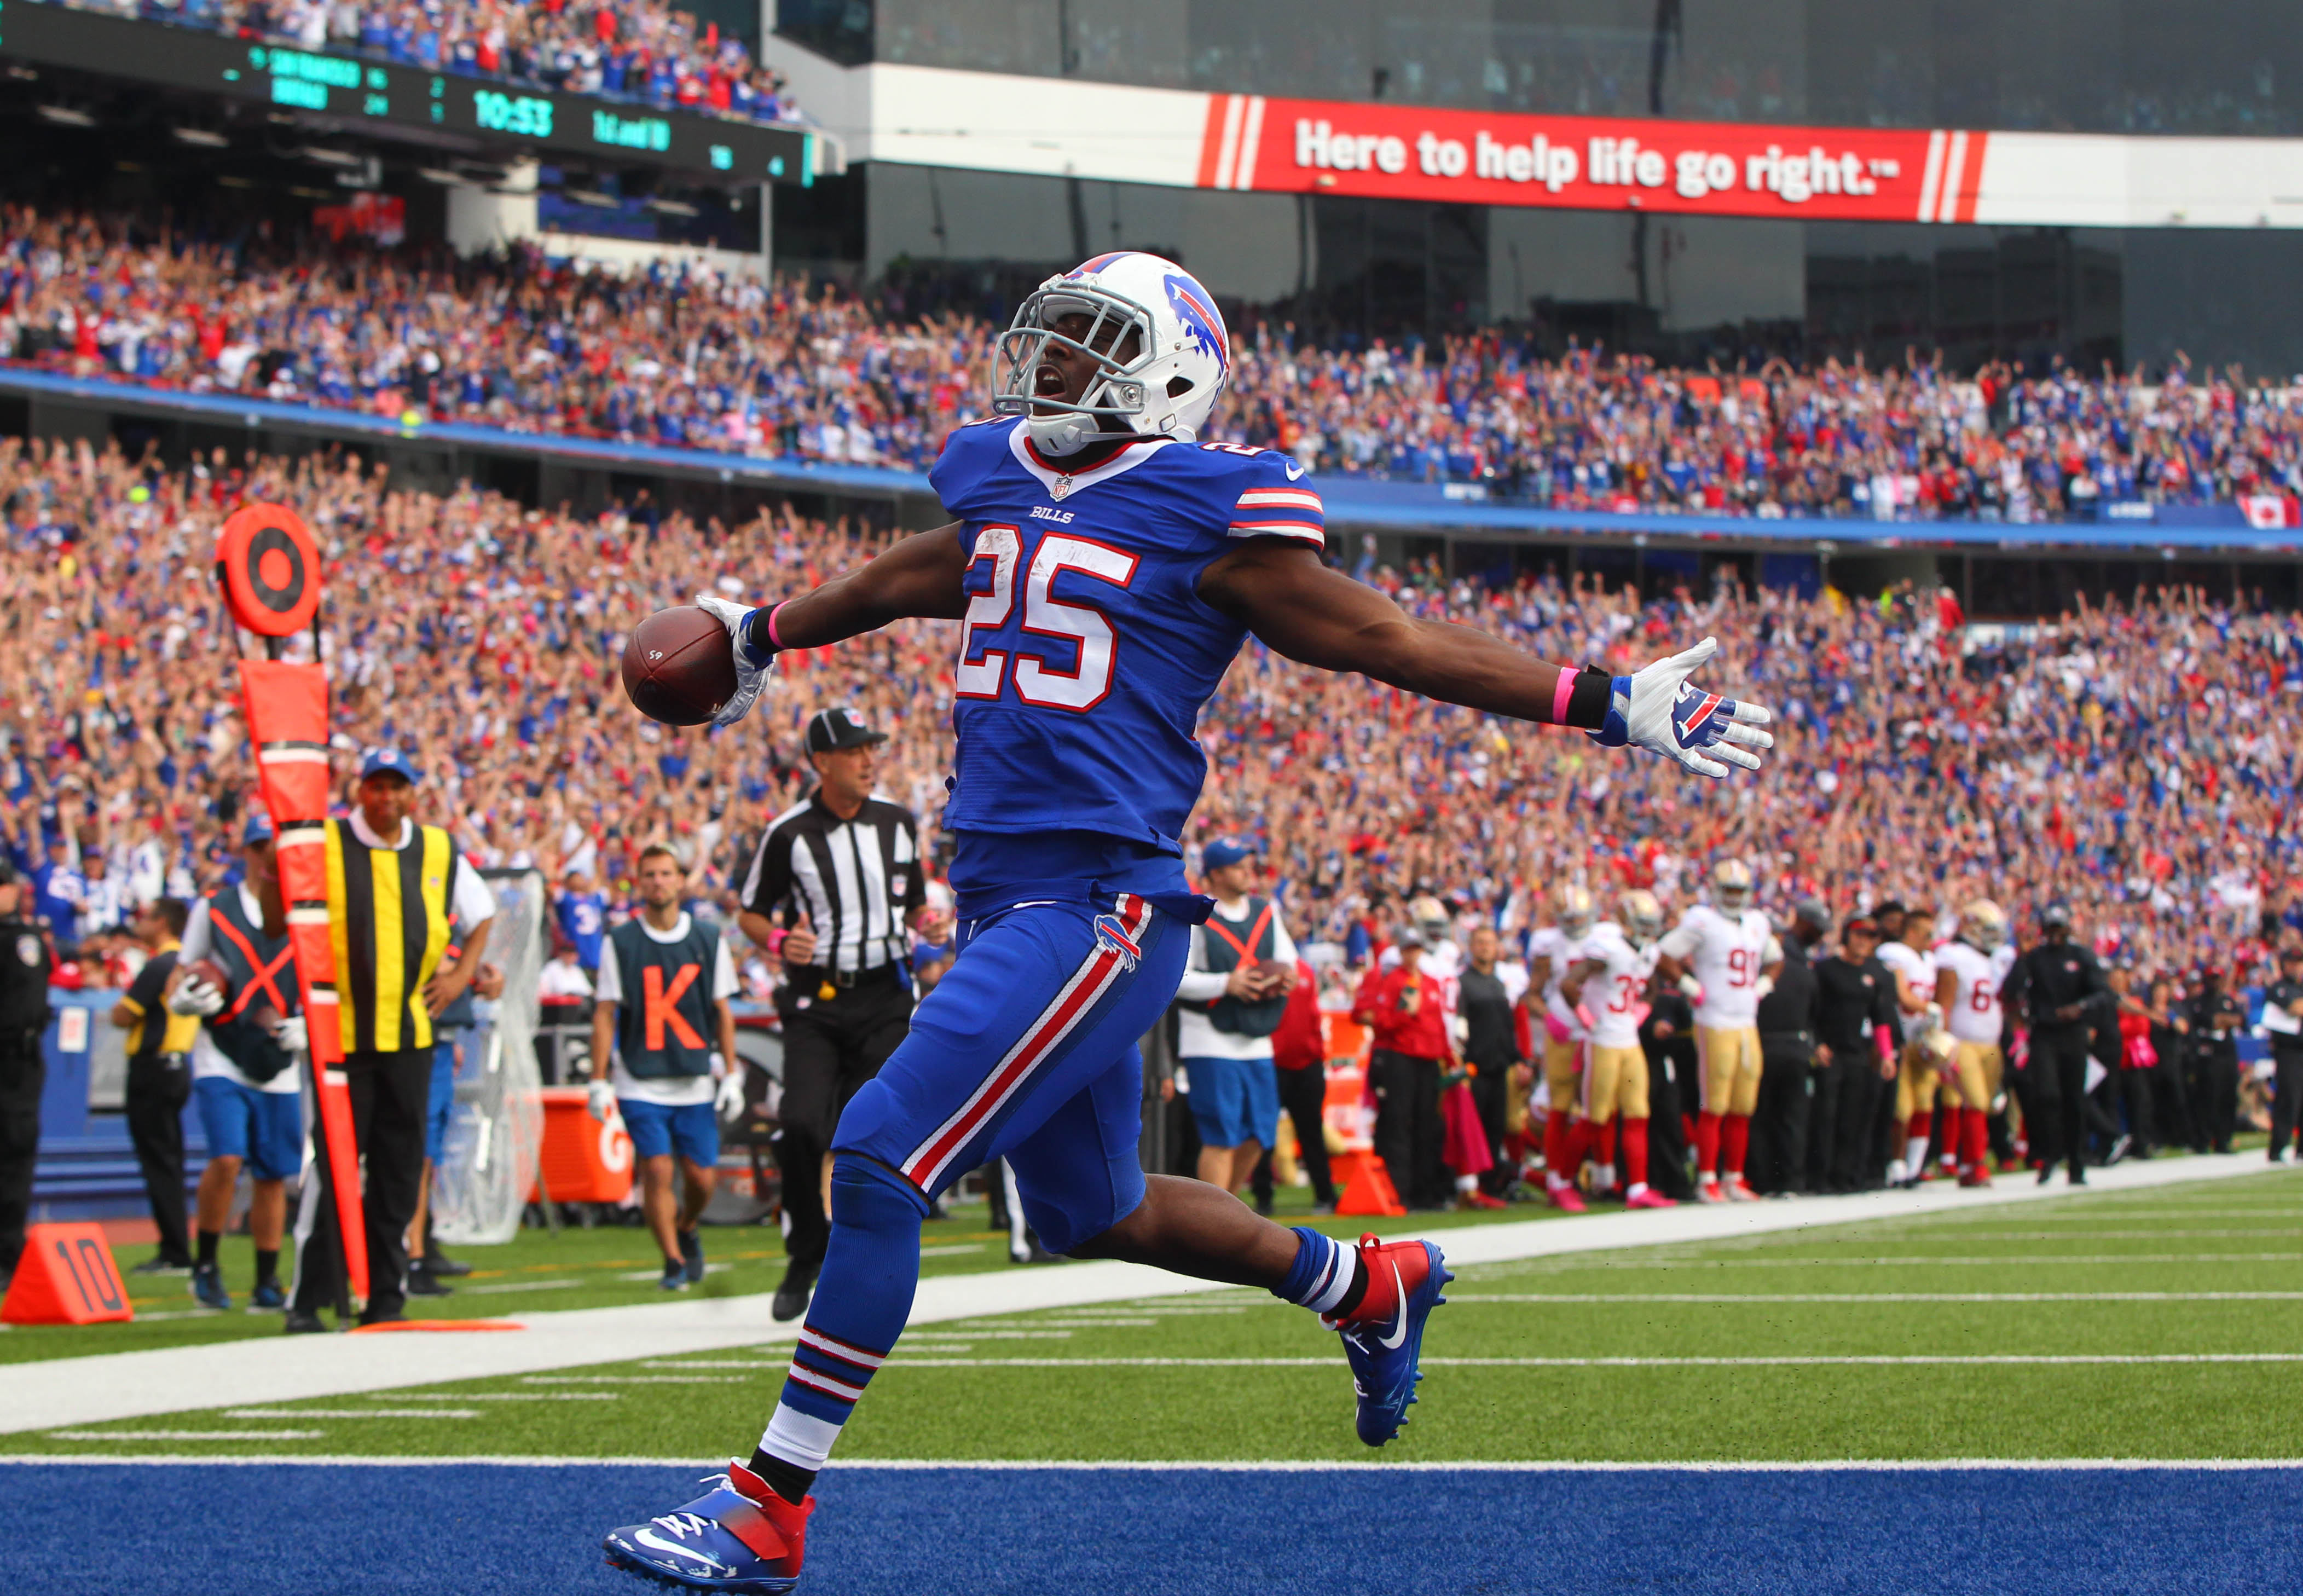 Buffalo Bills running back LeSean McCoy trots into the end zone for his third touchdown of the game against the San Francisco 49ers during the fourth quarter. (Mark Mulville/The Buffalo News)